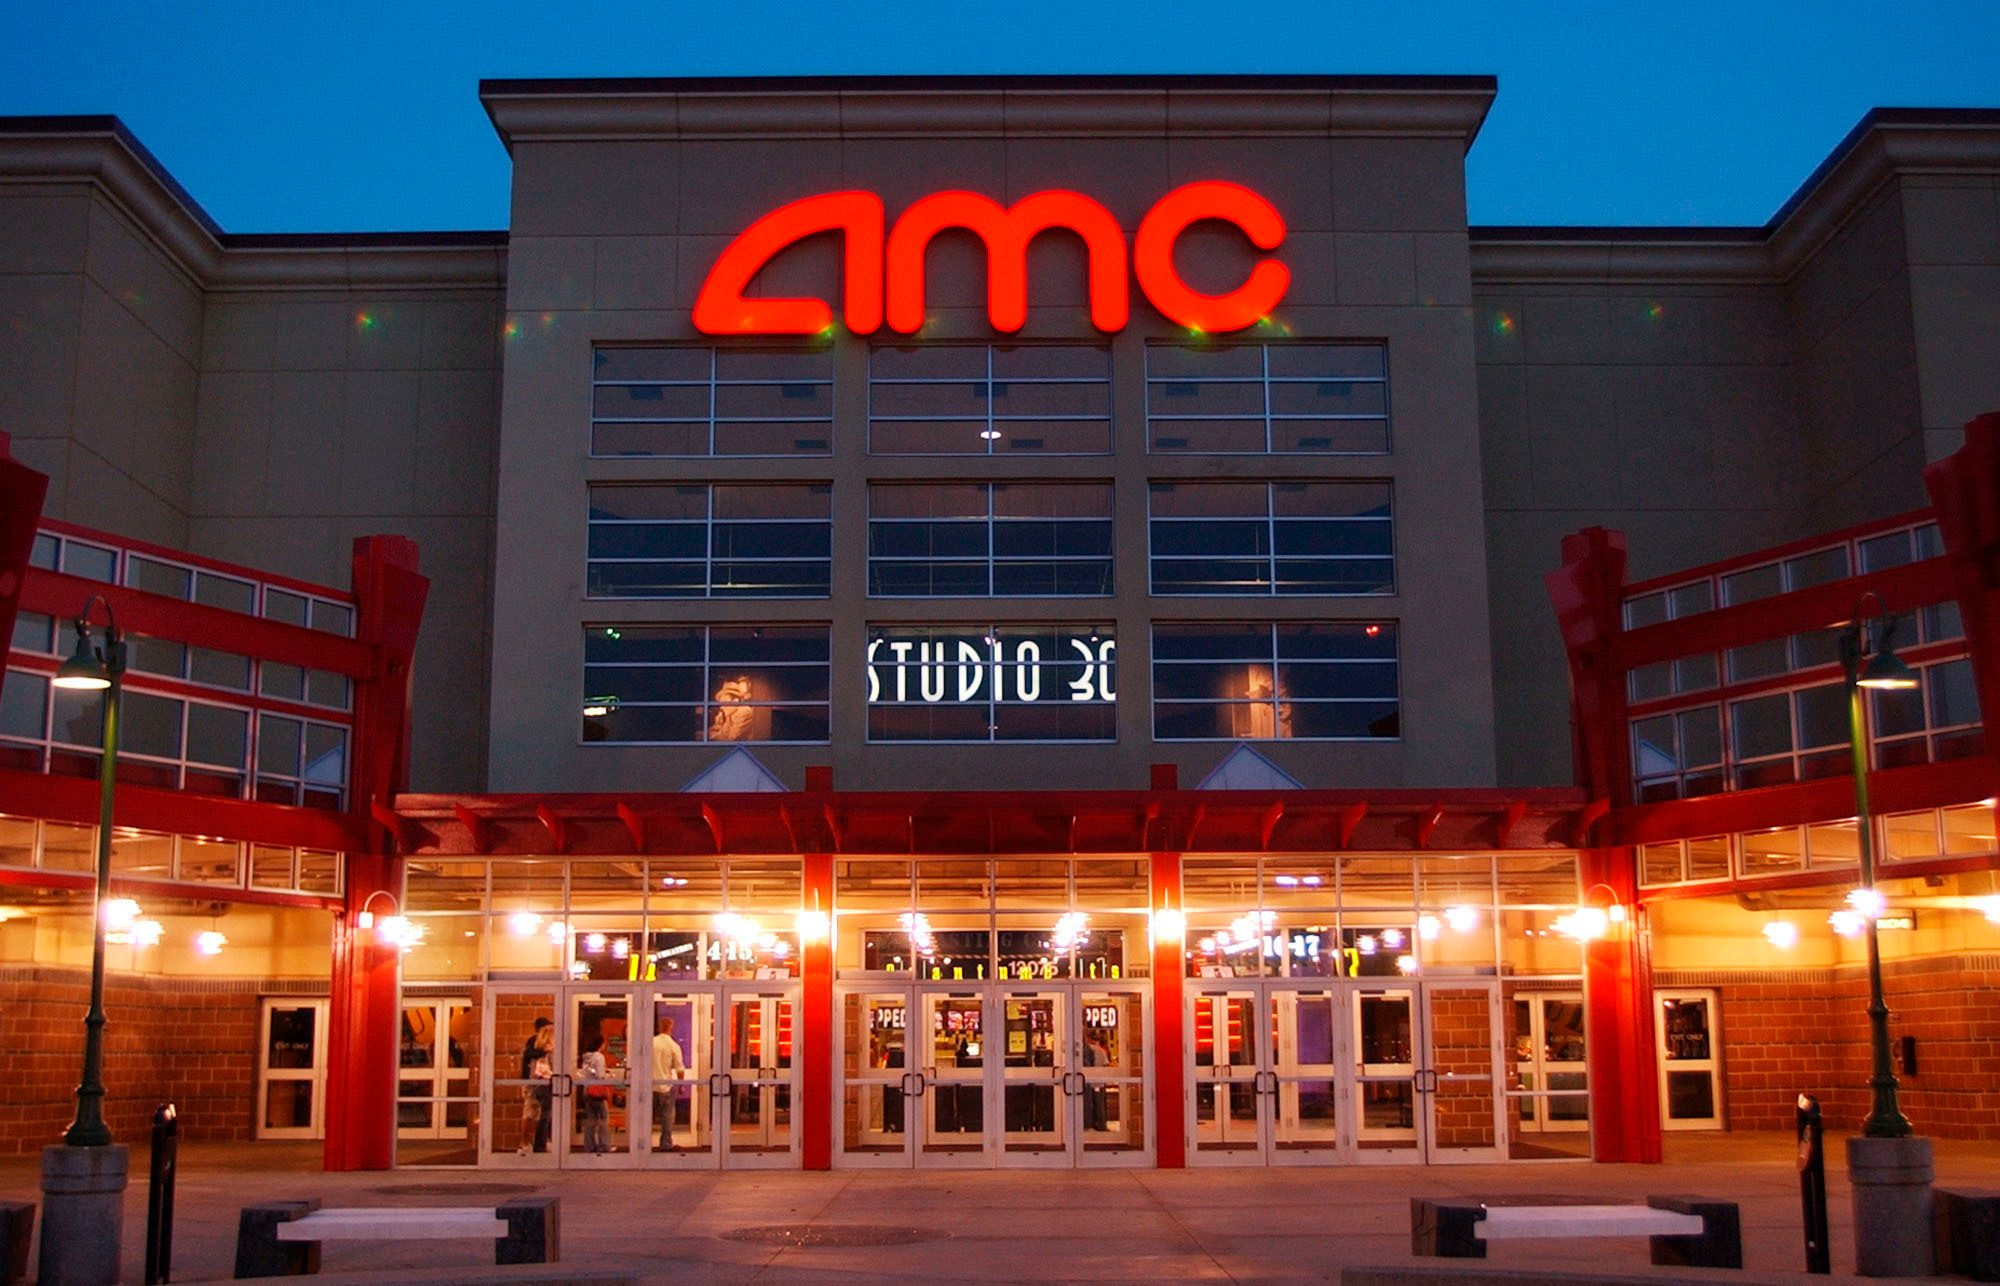 Mandatory Credit: Photo by Orlin Wagner/AP/Shutterstock (9722749a) AMC STUDIO 30. People enter AMC's Studio 30 theater in Olathe, Kan. AMC Theatres, the world's largest movie theater chain, has unveiled a $20-a-month subscription service to rival the flagging MoviePass. The theater chain on Wednesday announced a new service to its loyalty program, AMC Stubs, allowing subscribers to see up to three movies a week for a monthly fee of $19.95 AMC Theatres Subscription Service, OLATHE, USA - 11 May 2005